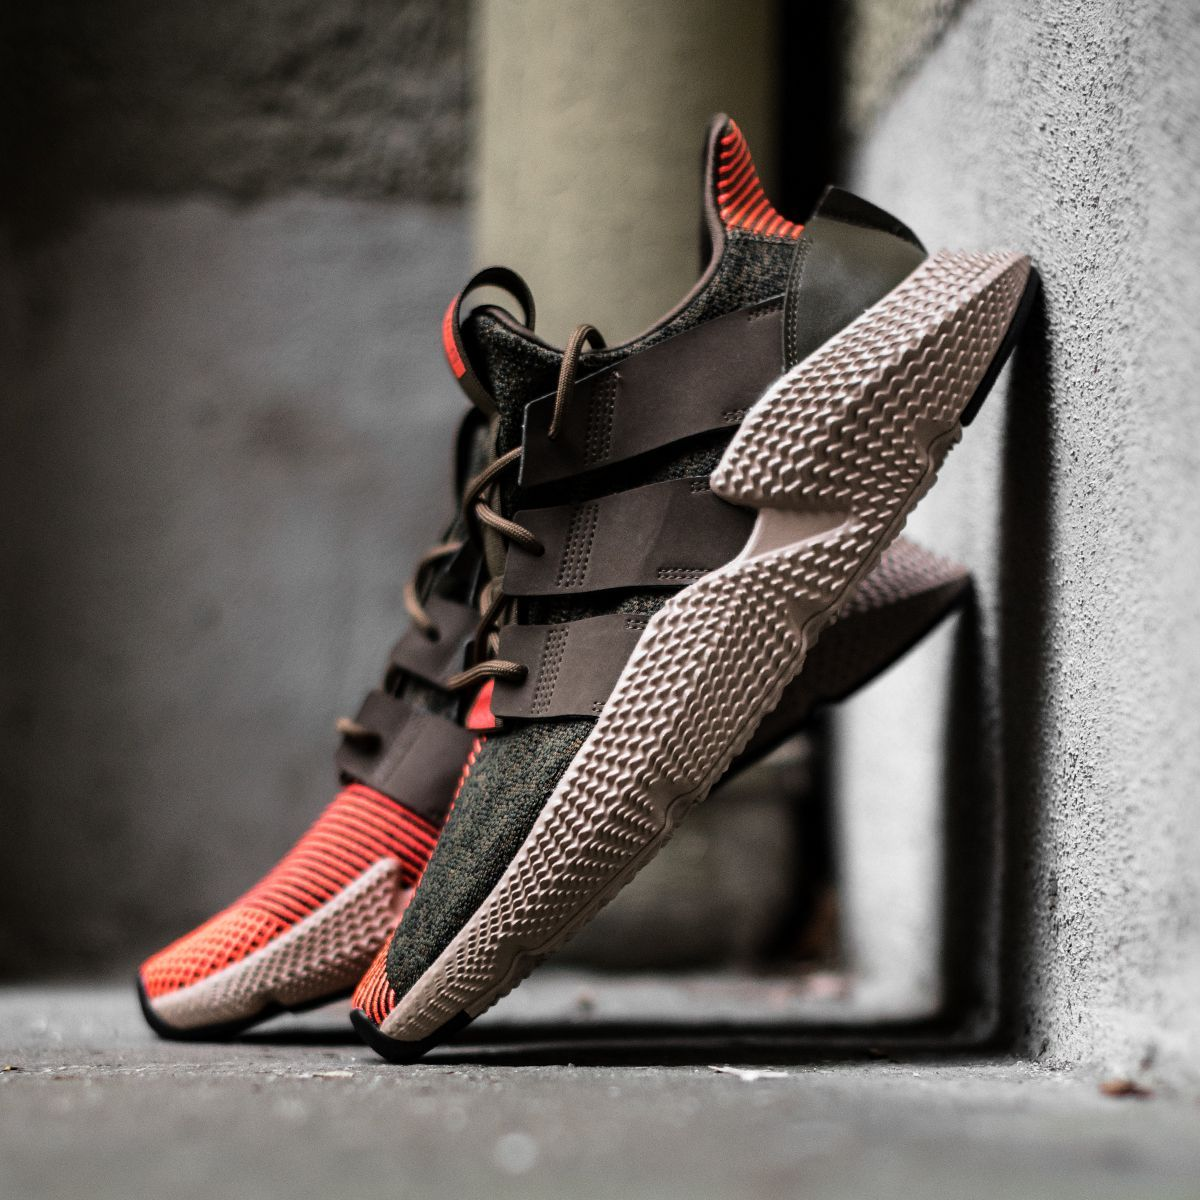 new style d243a a09dd adidas boldest and bulkiest sneakers are back! Get the PROPHERE now on  KICKZ.com and in selected stores!